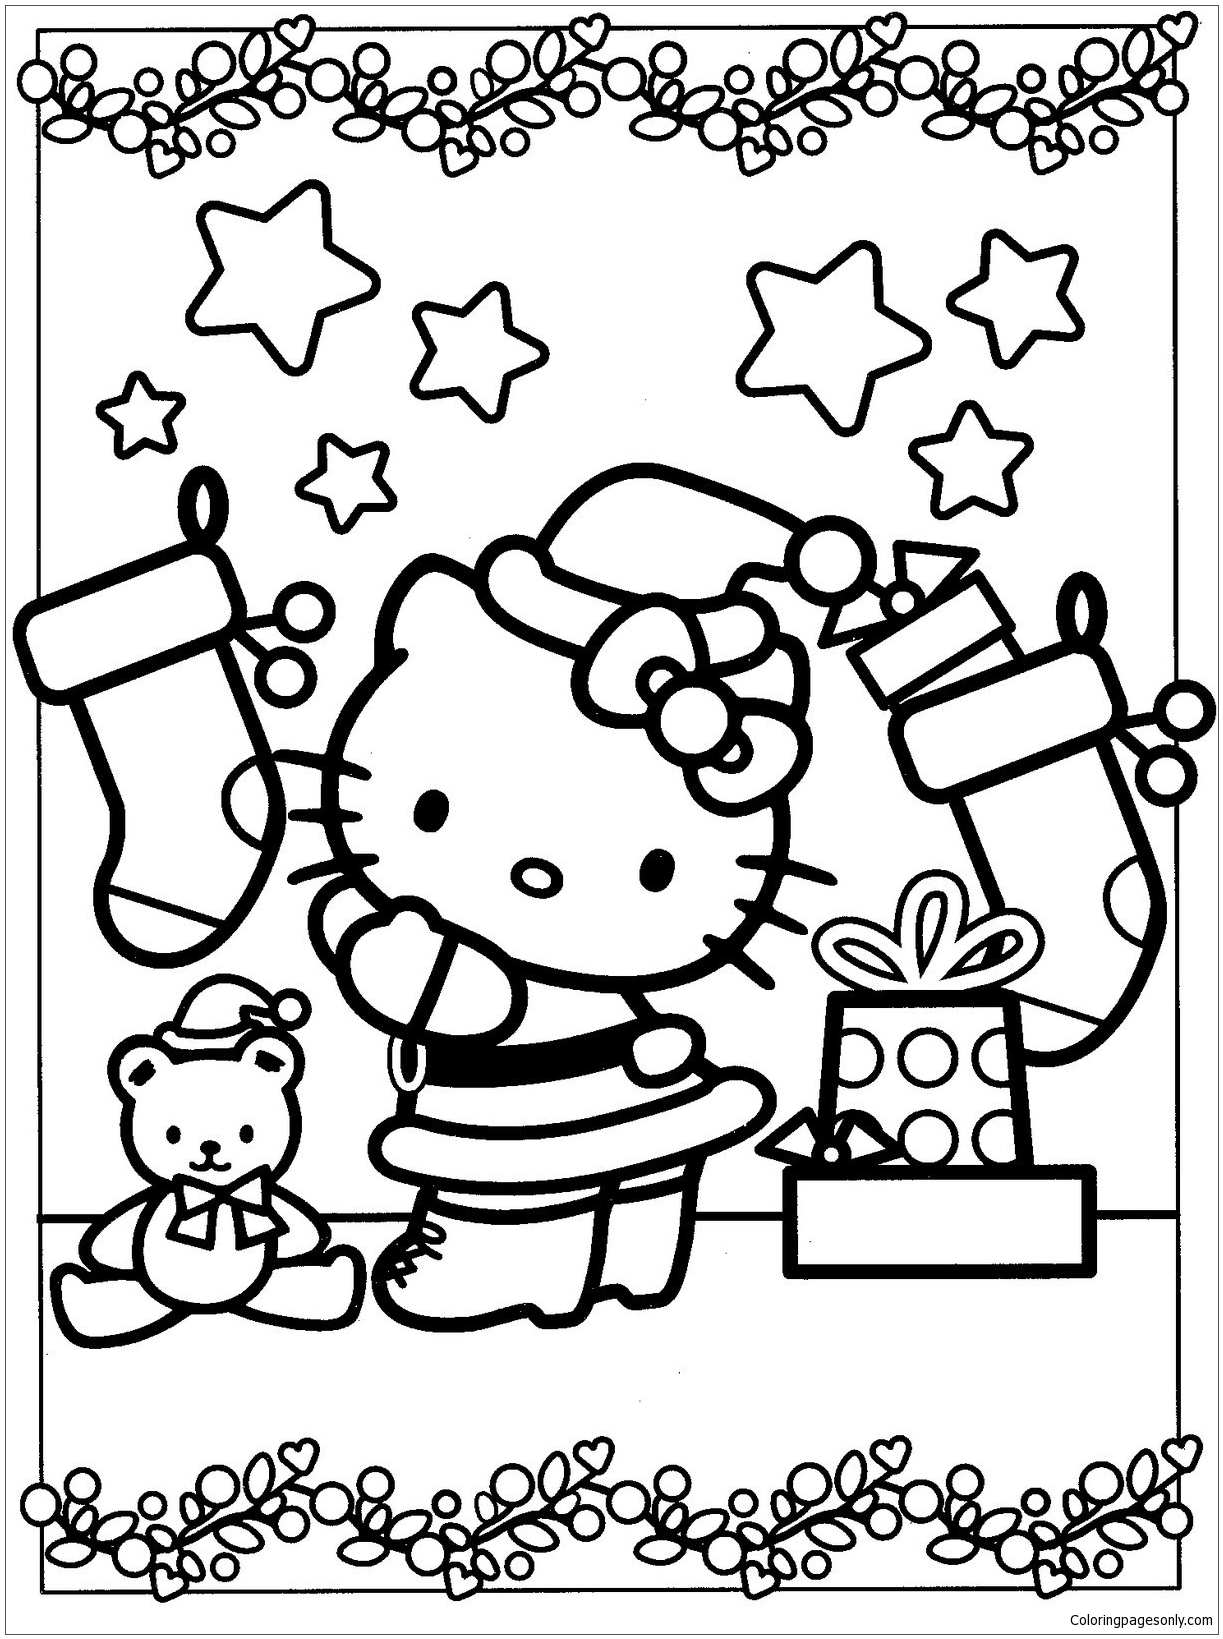 christmas hello kitty coloring pages hello kitty christmas coloring page wallpapers9 kitty hello christmas coloring pages